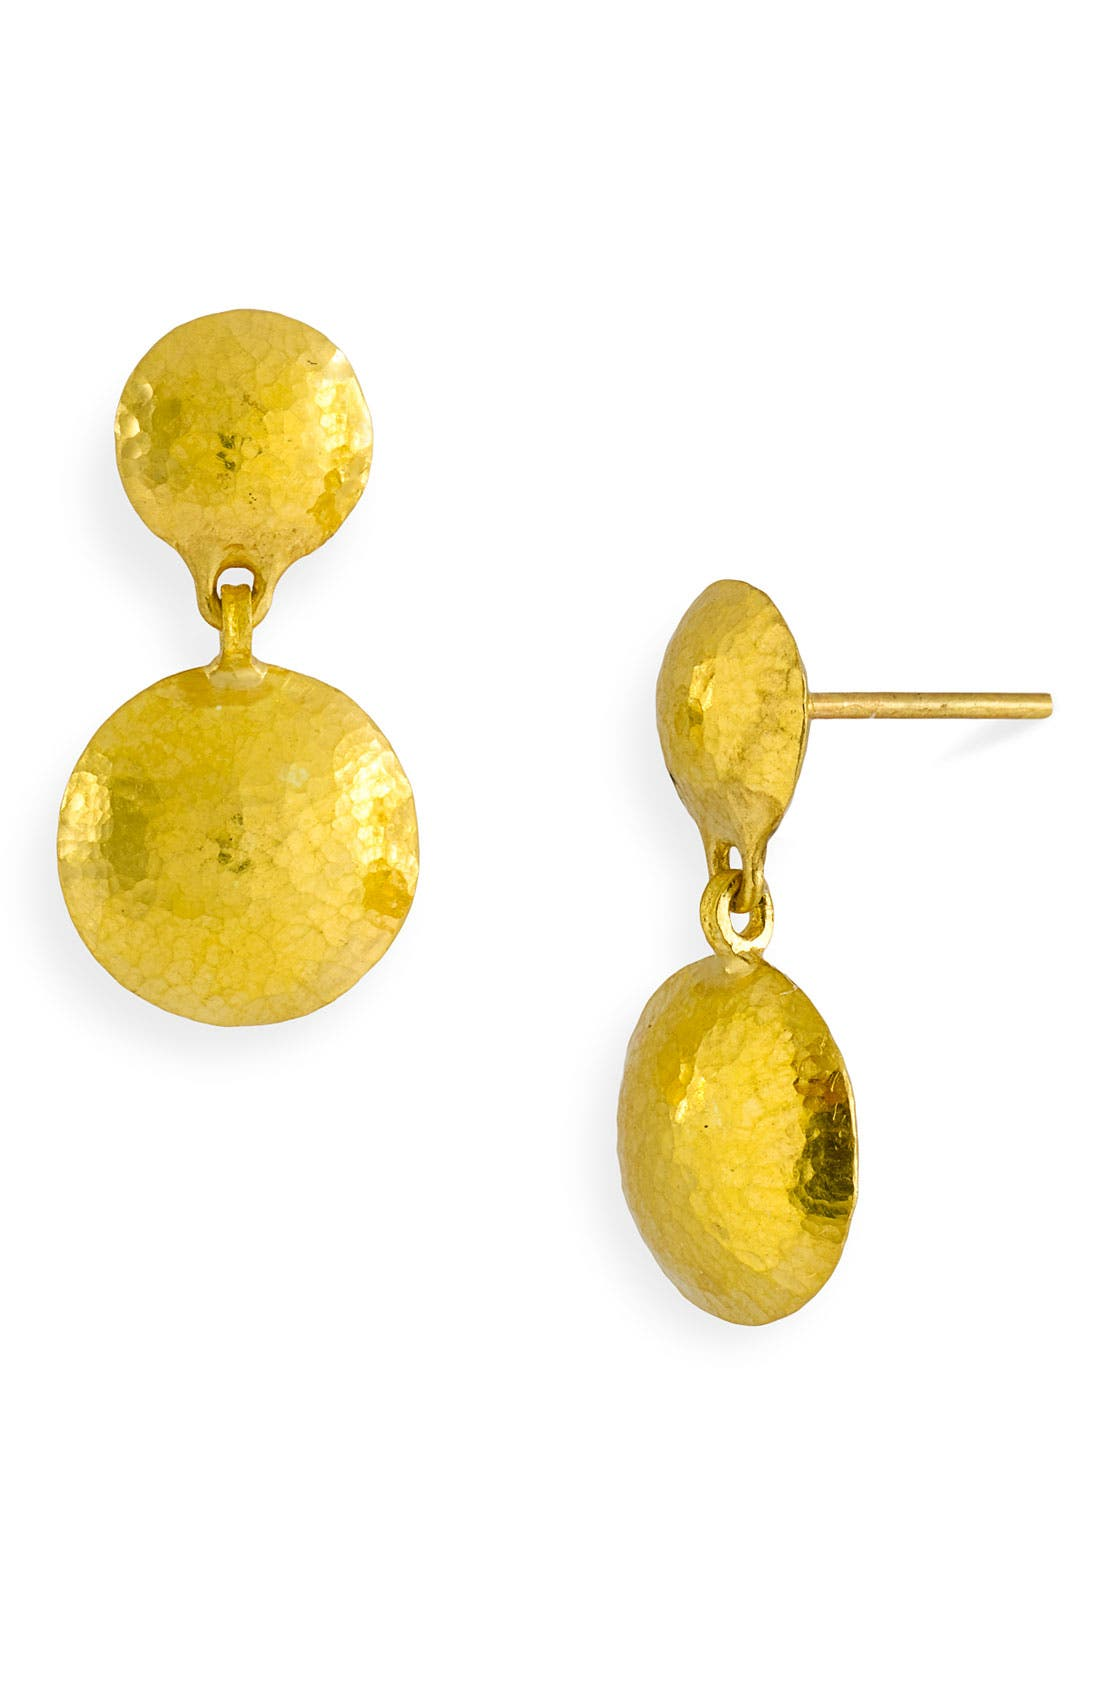 Alternate Image 1 Selected - Gurhan 'Lentil' Double Disc Drop Earrings